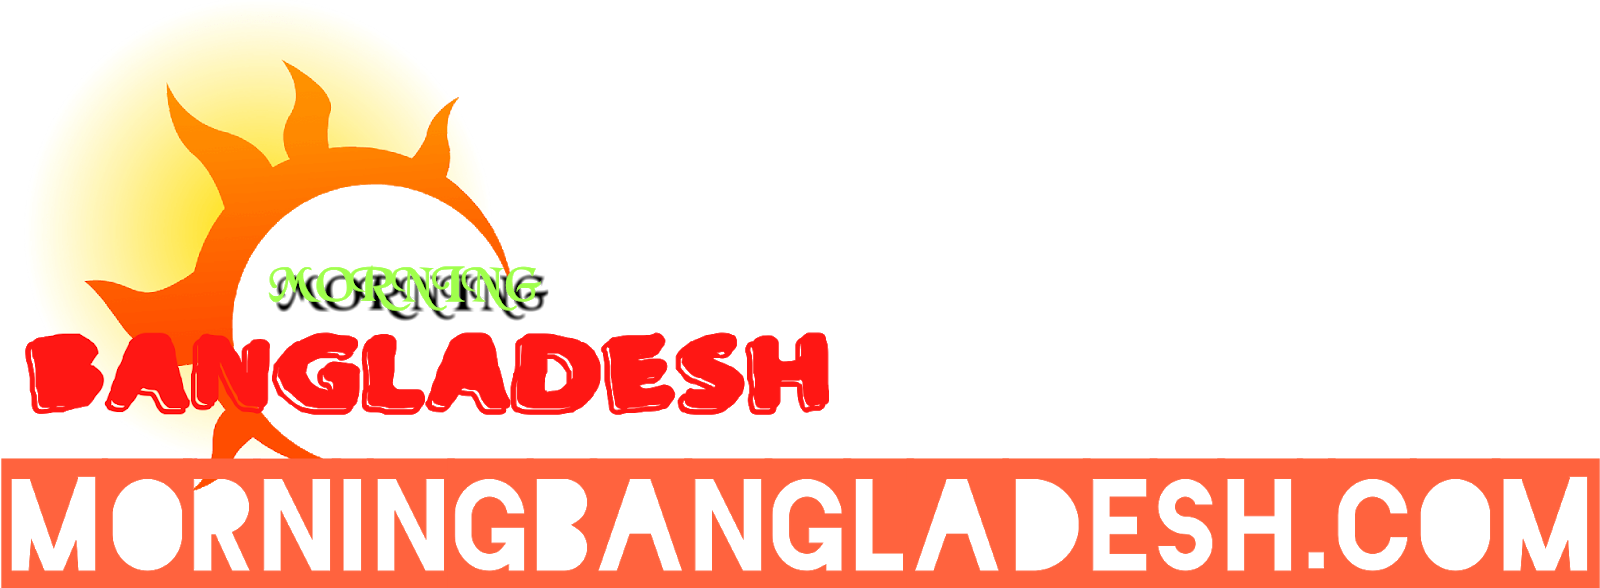 MORNINGBANGLADESH.COM